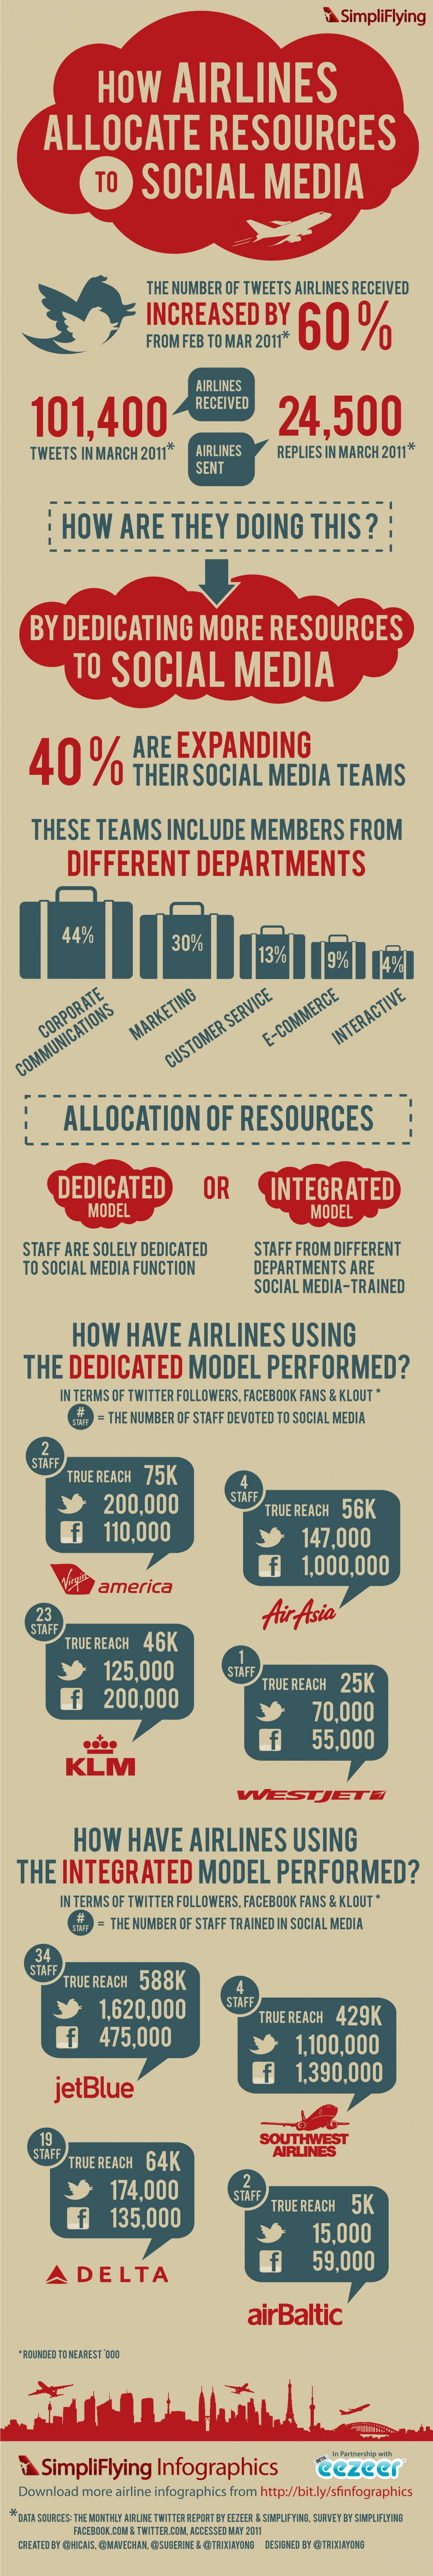 How Airlines Dedicate Resources to Social media Infographic